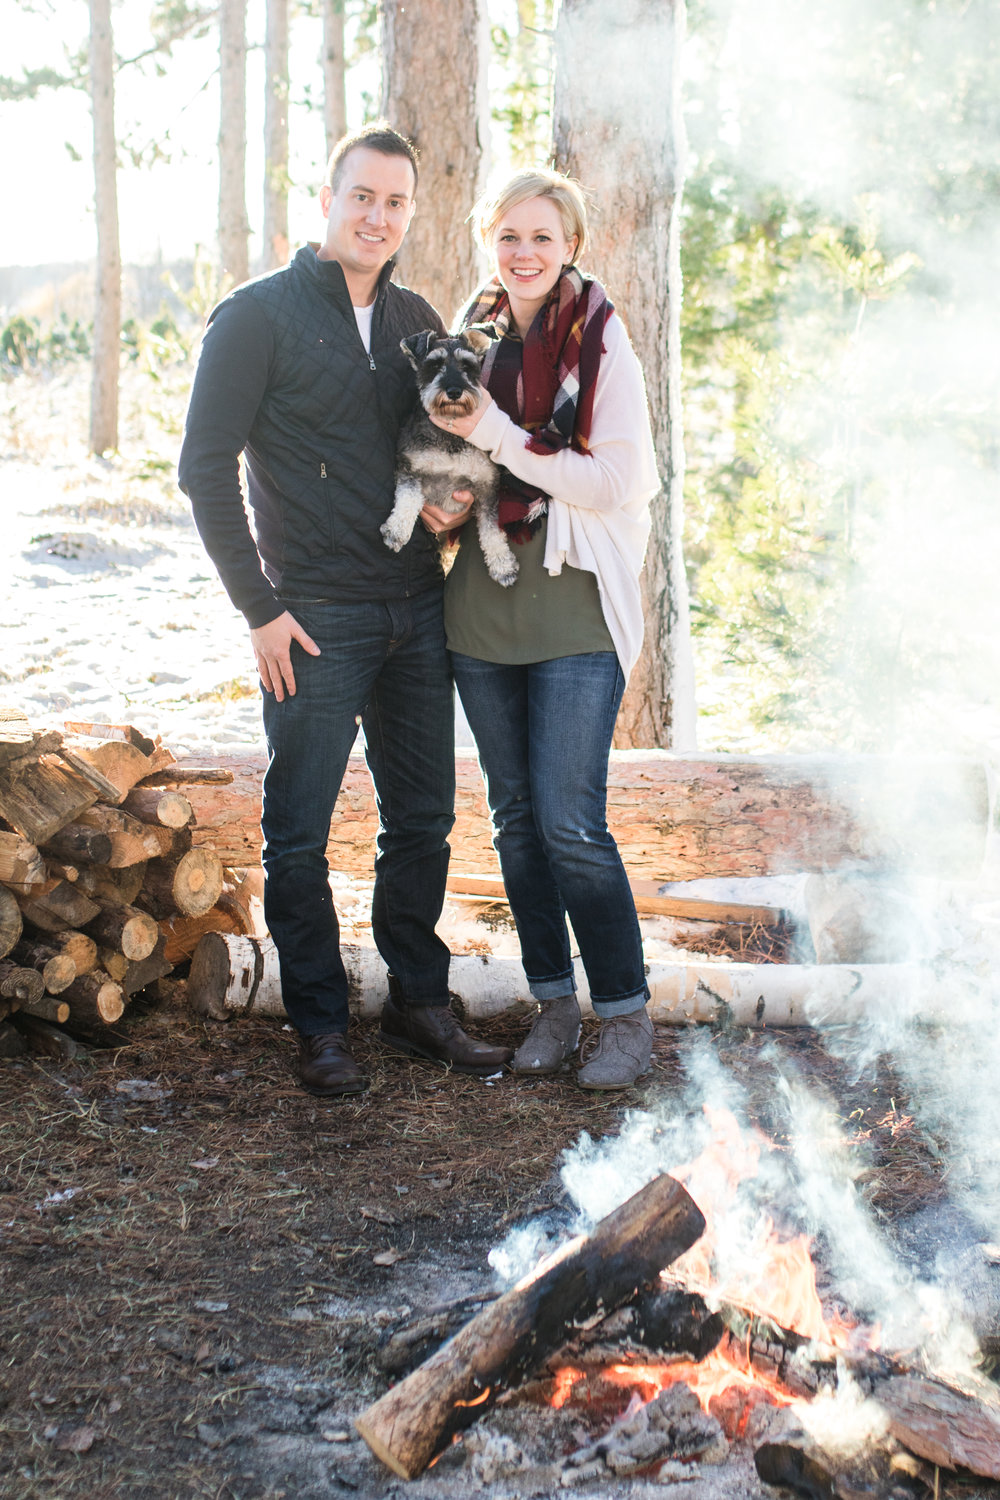 Nielsen Mini Session - Hansen Tree Farm -Sabrina Reis Photography - Minneapolis -4.jpg